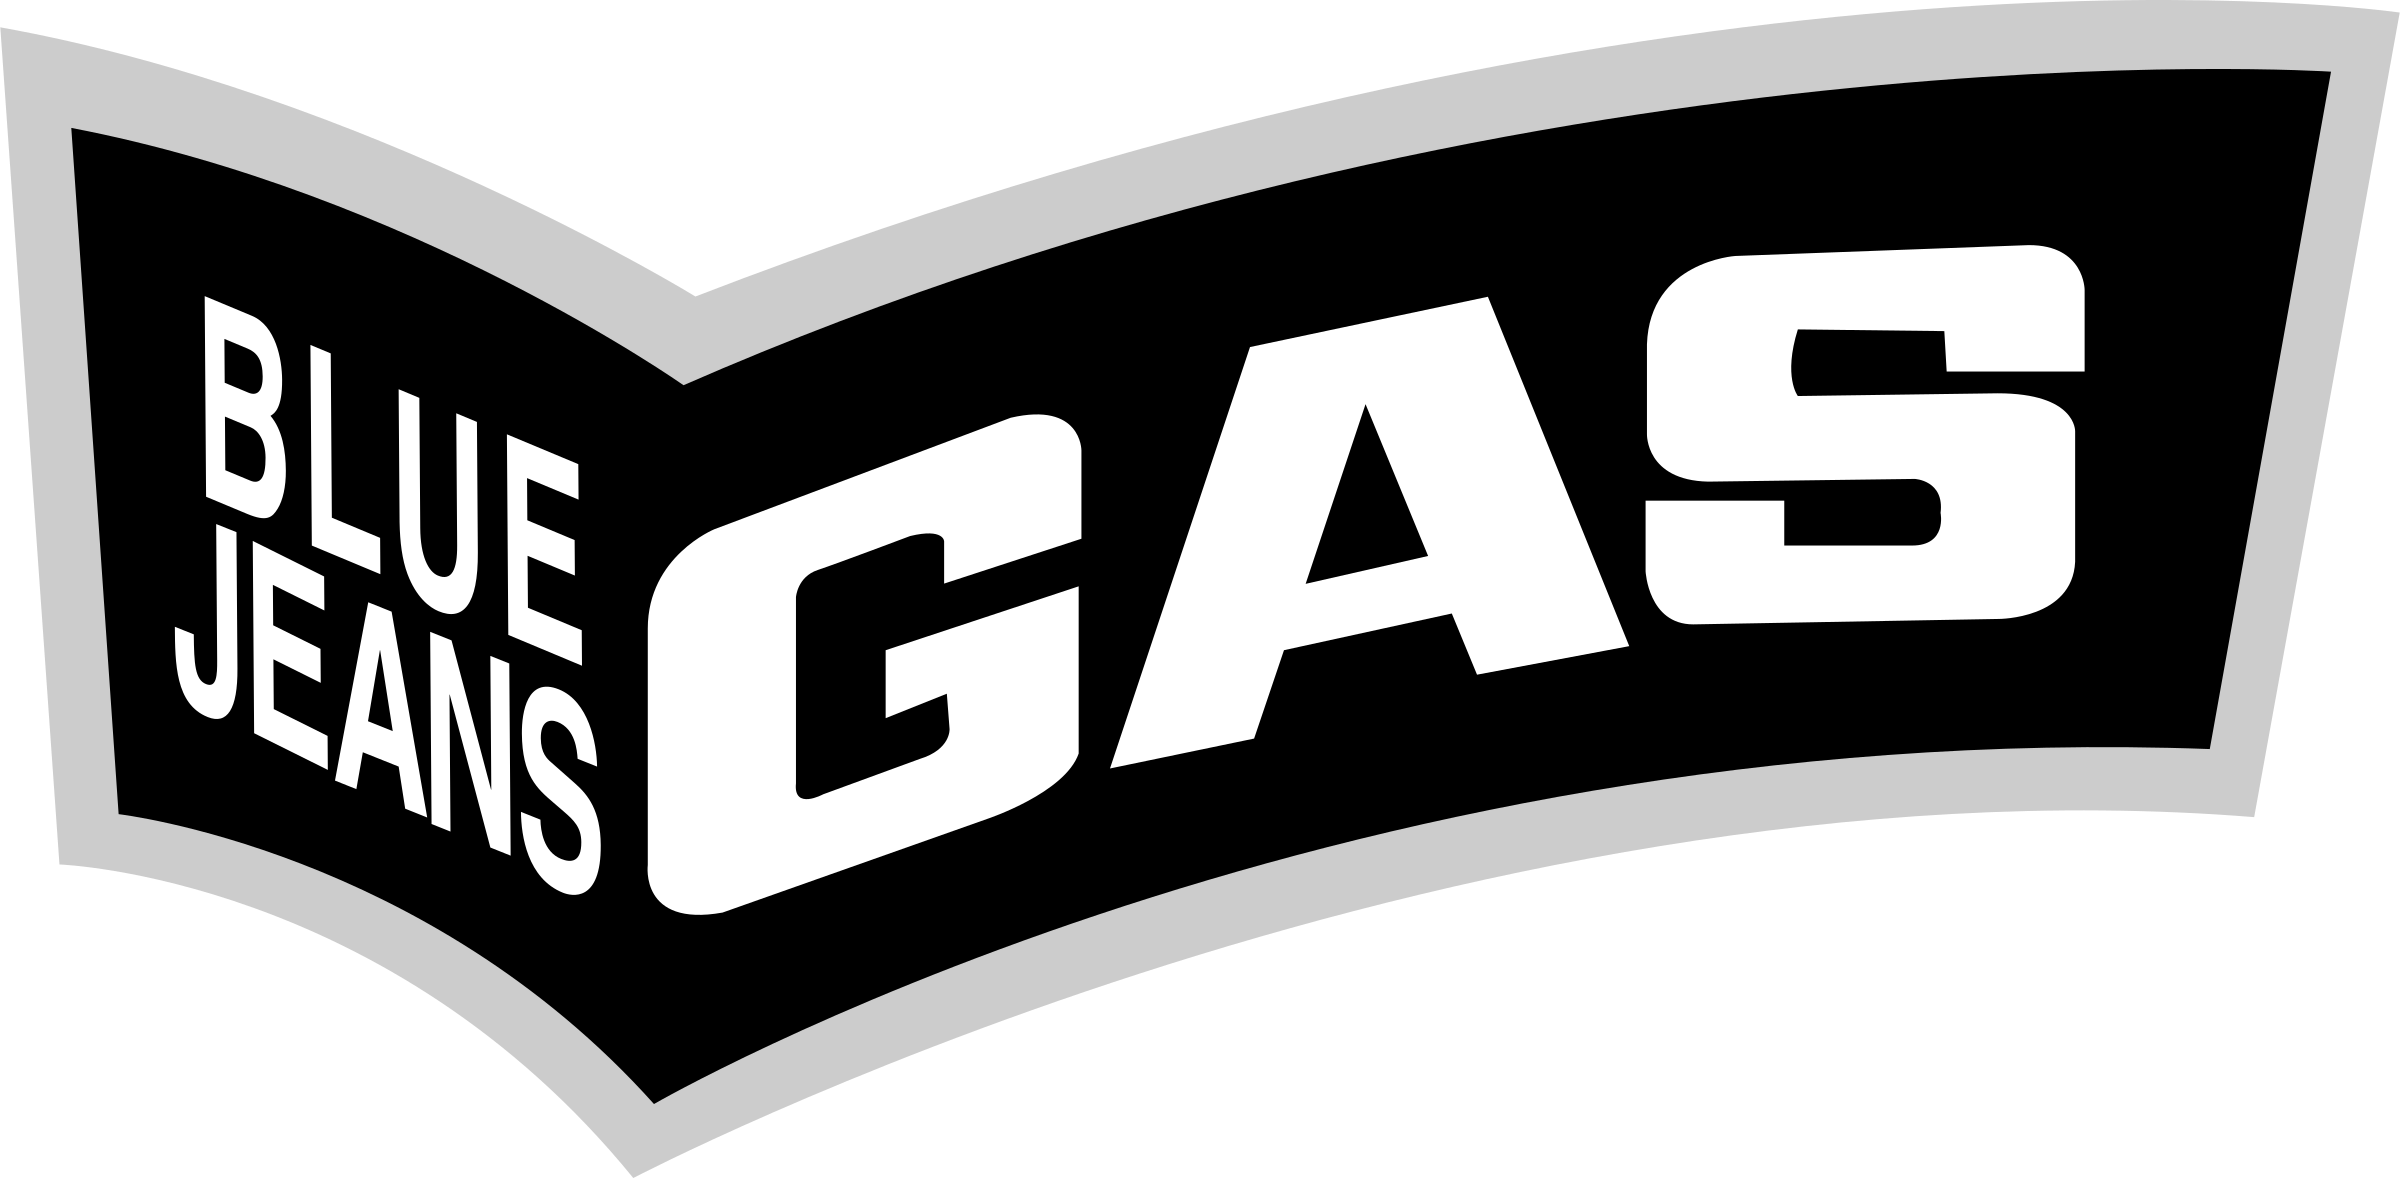 Gas logo png transparent. Jeans vector blue svg black and white